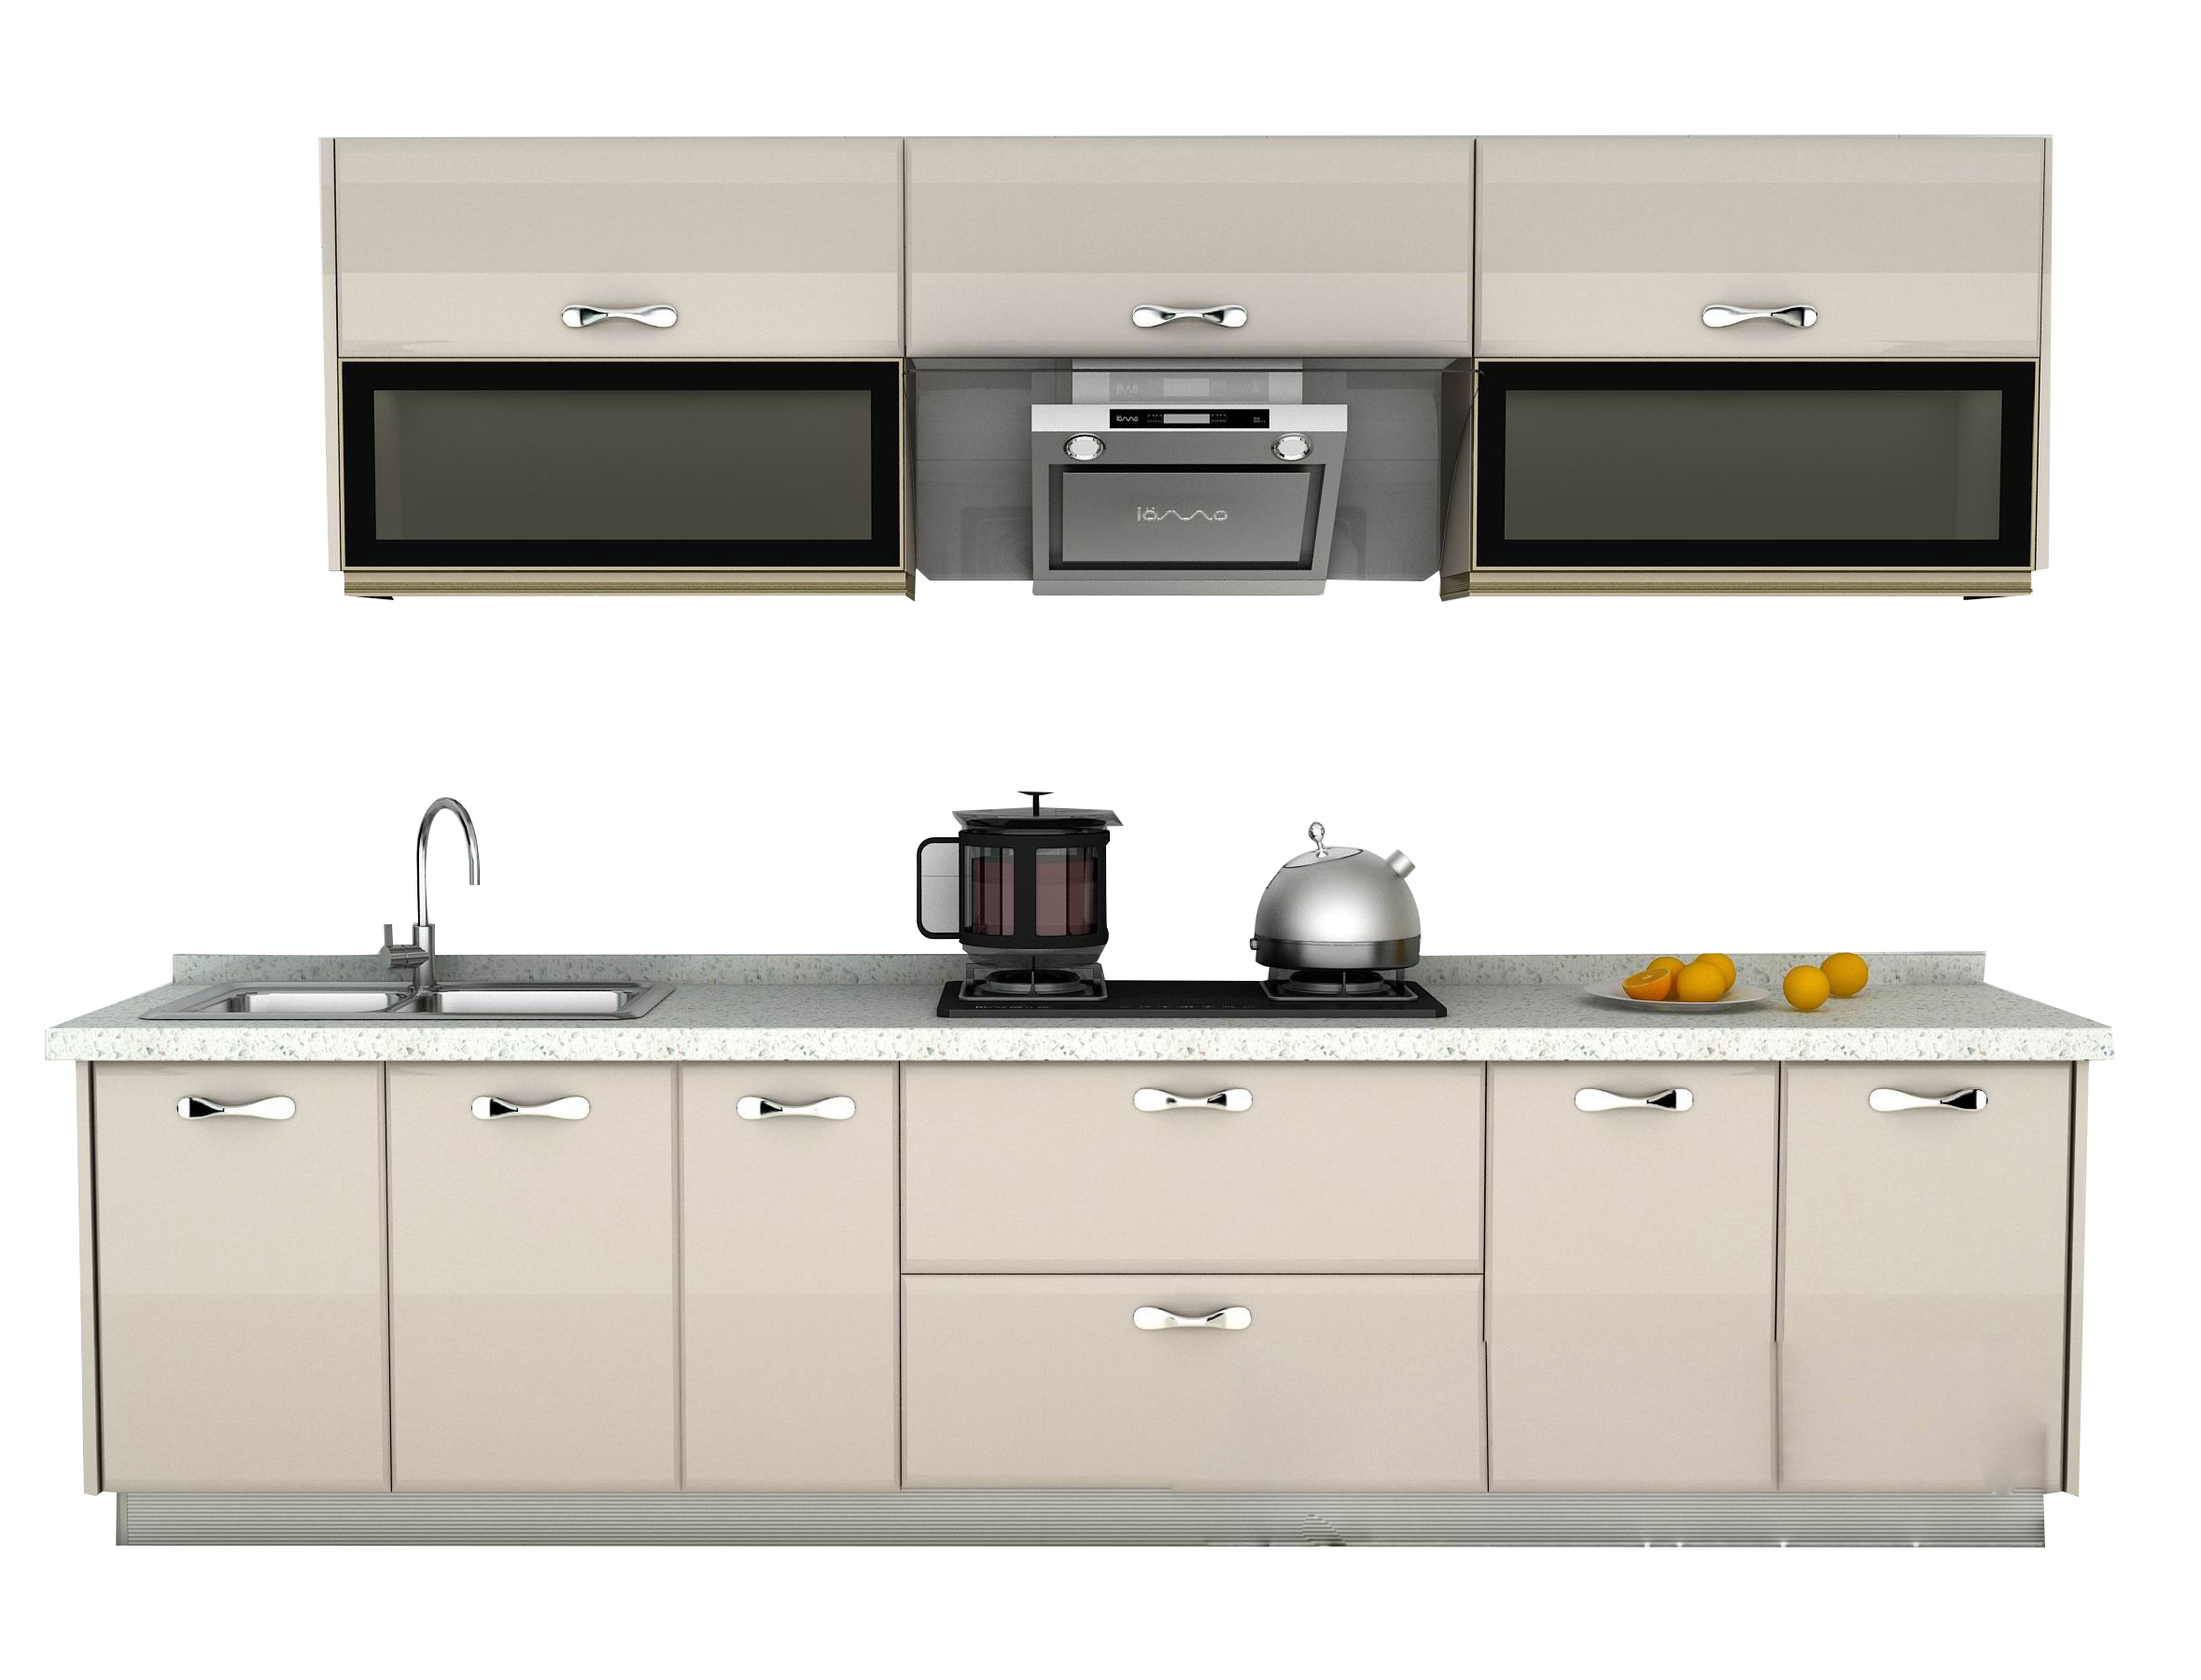 Kitchen PNG Images Transparent Free Download.